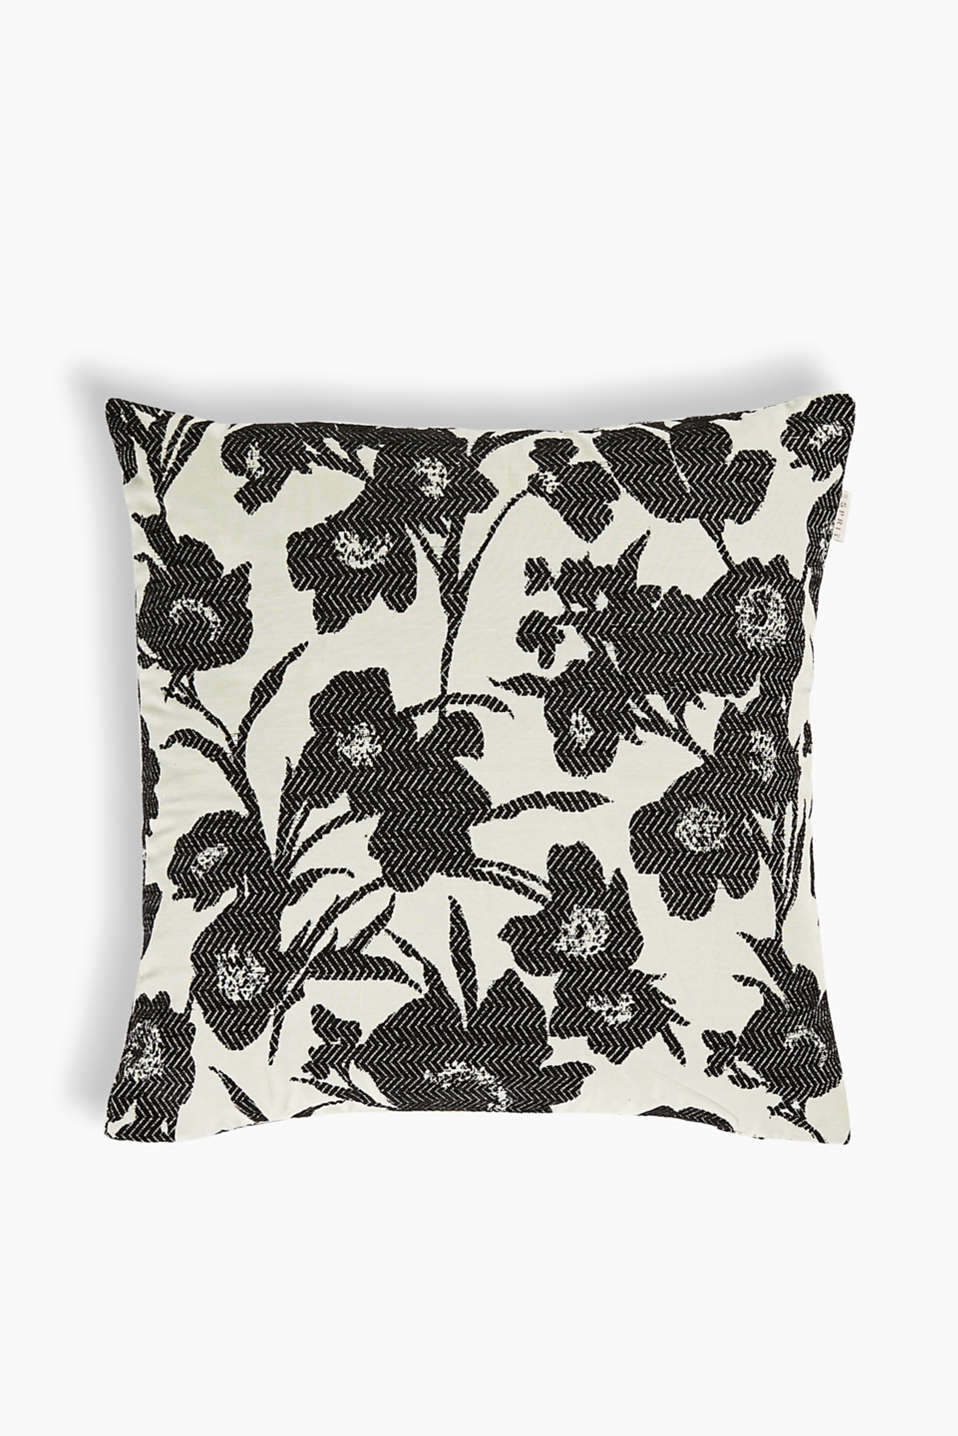 Cushion cover with a classic floral pattern, made of textured fabric